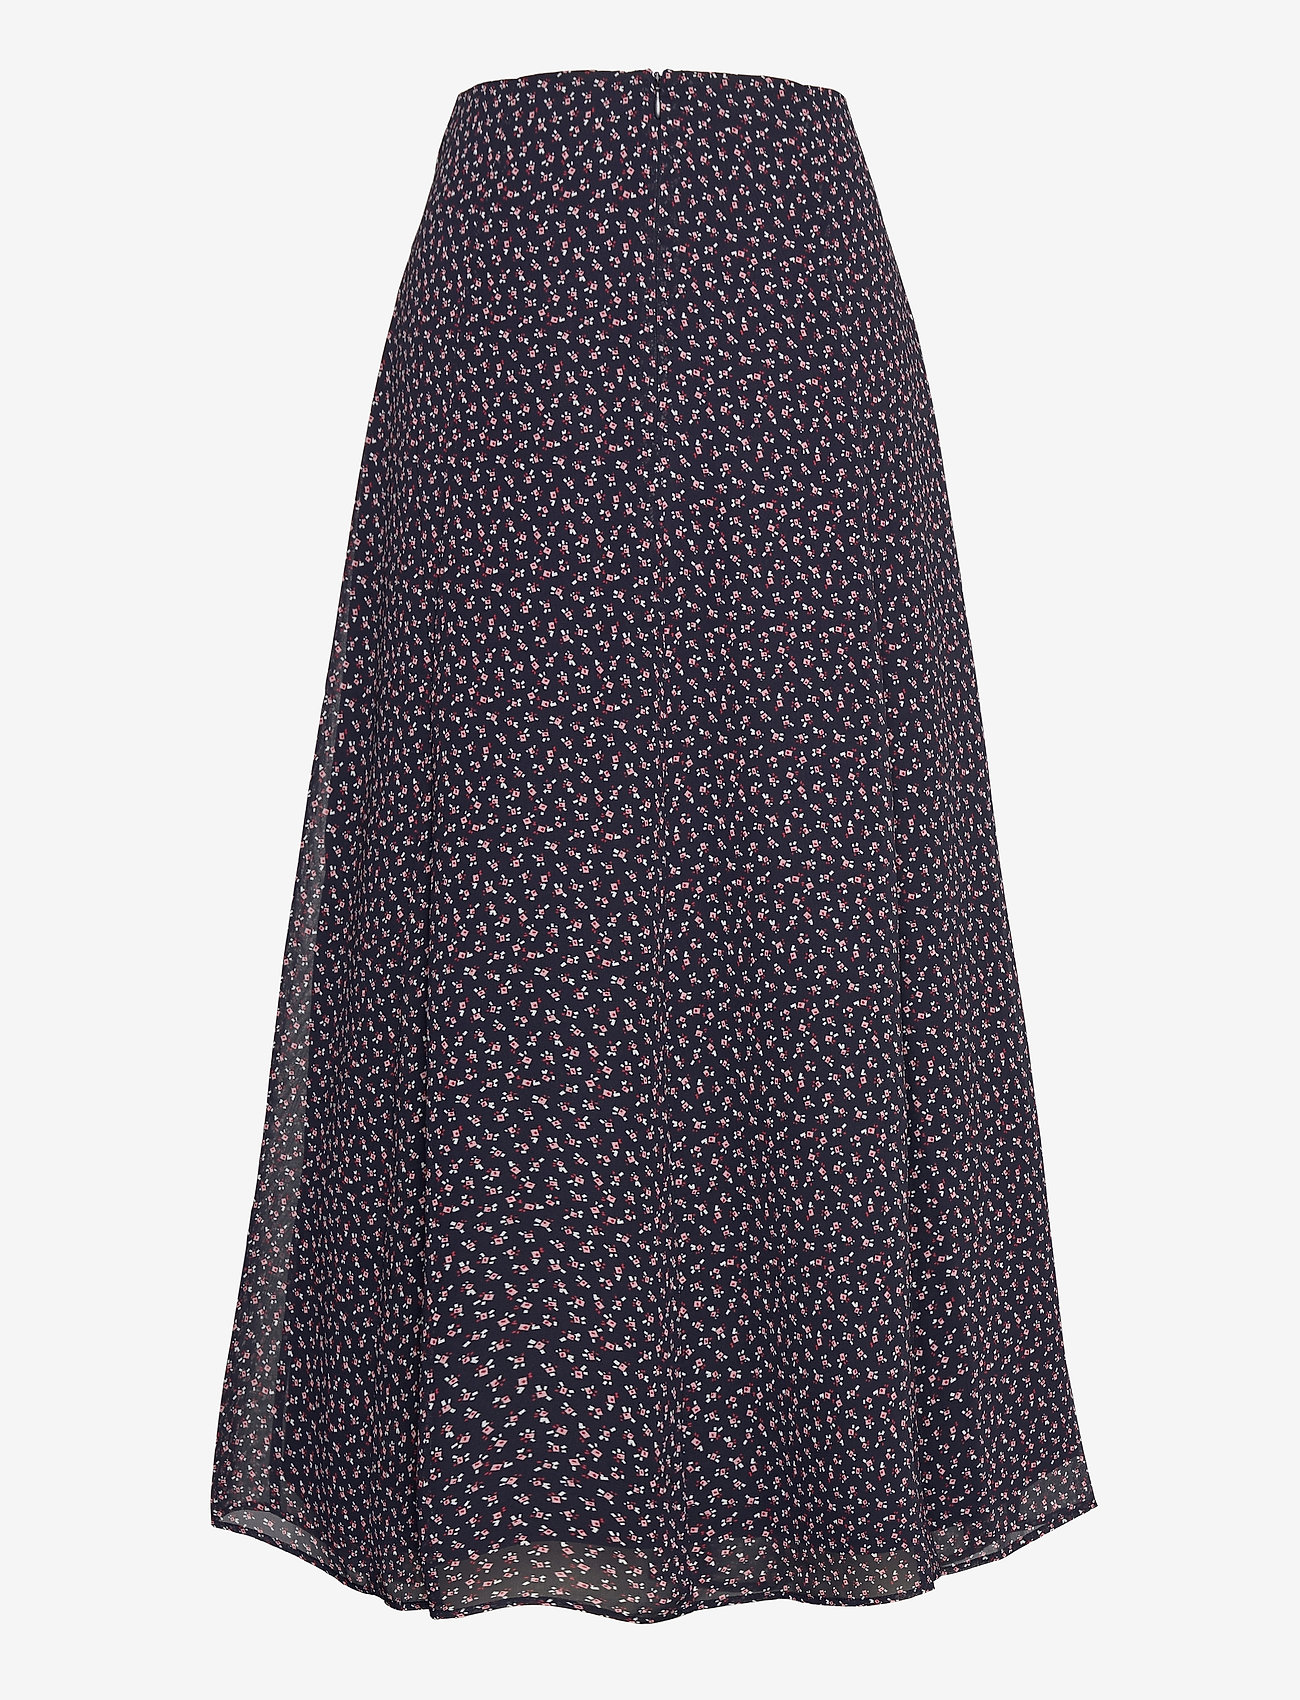 Skirts Light Woven (Navy 4) (38.99 €) - EDC by Esprit xvE9O